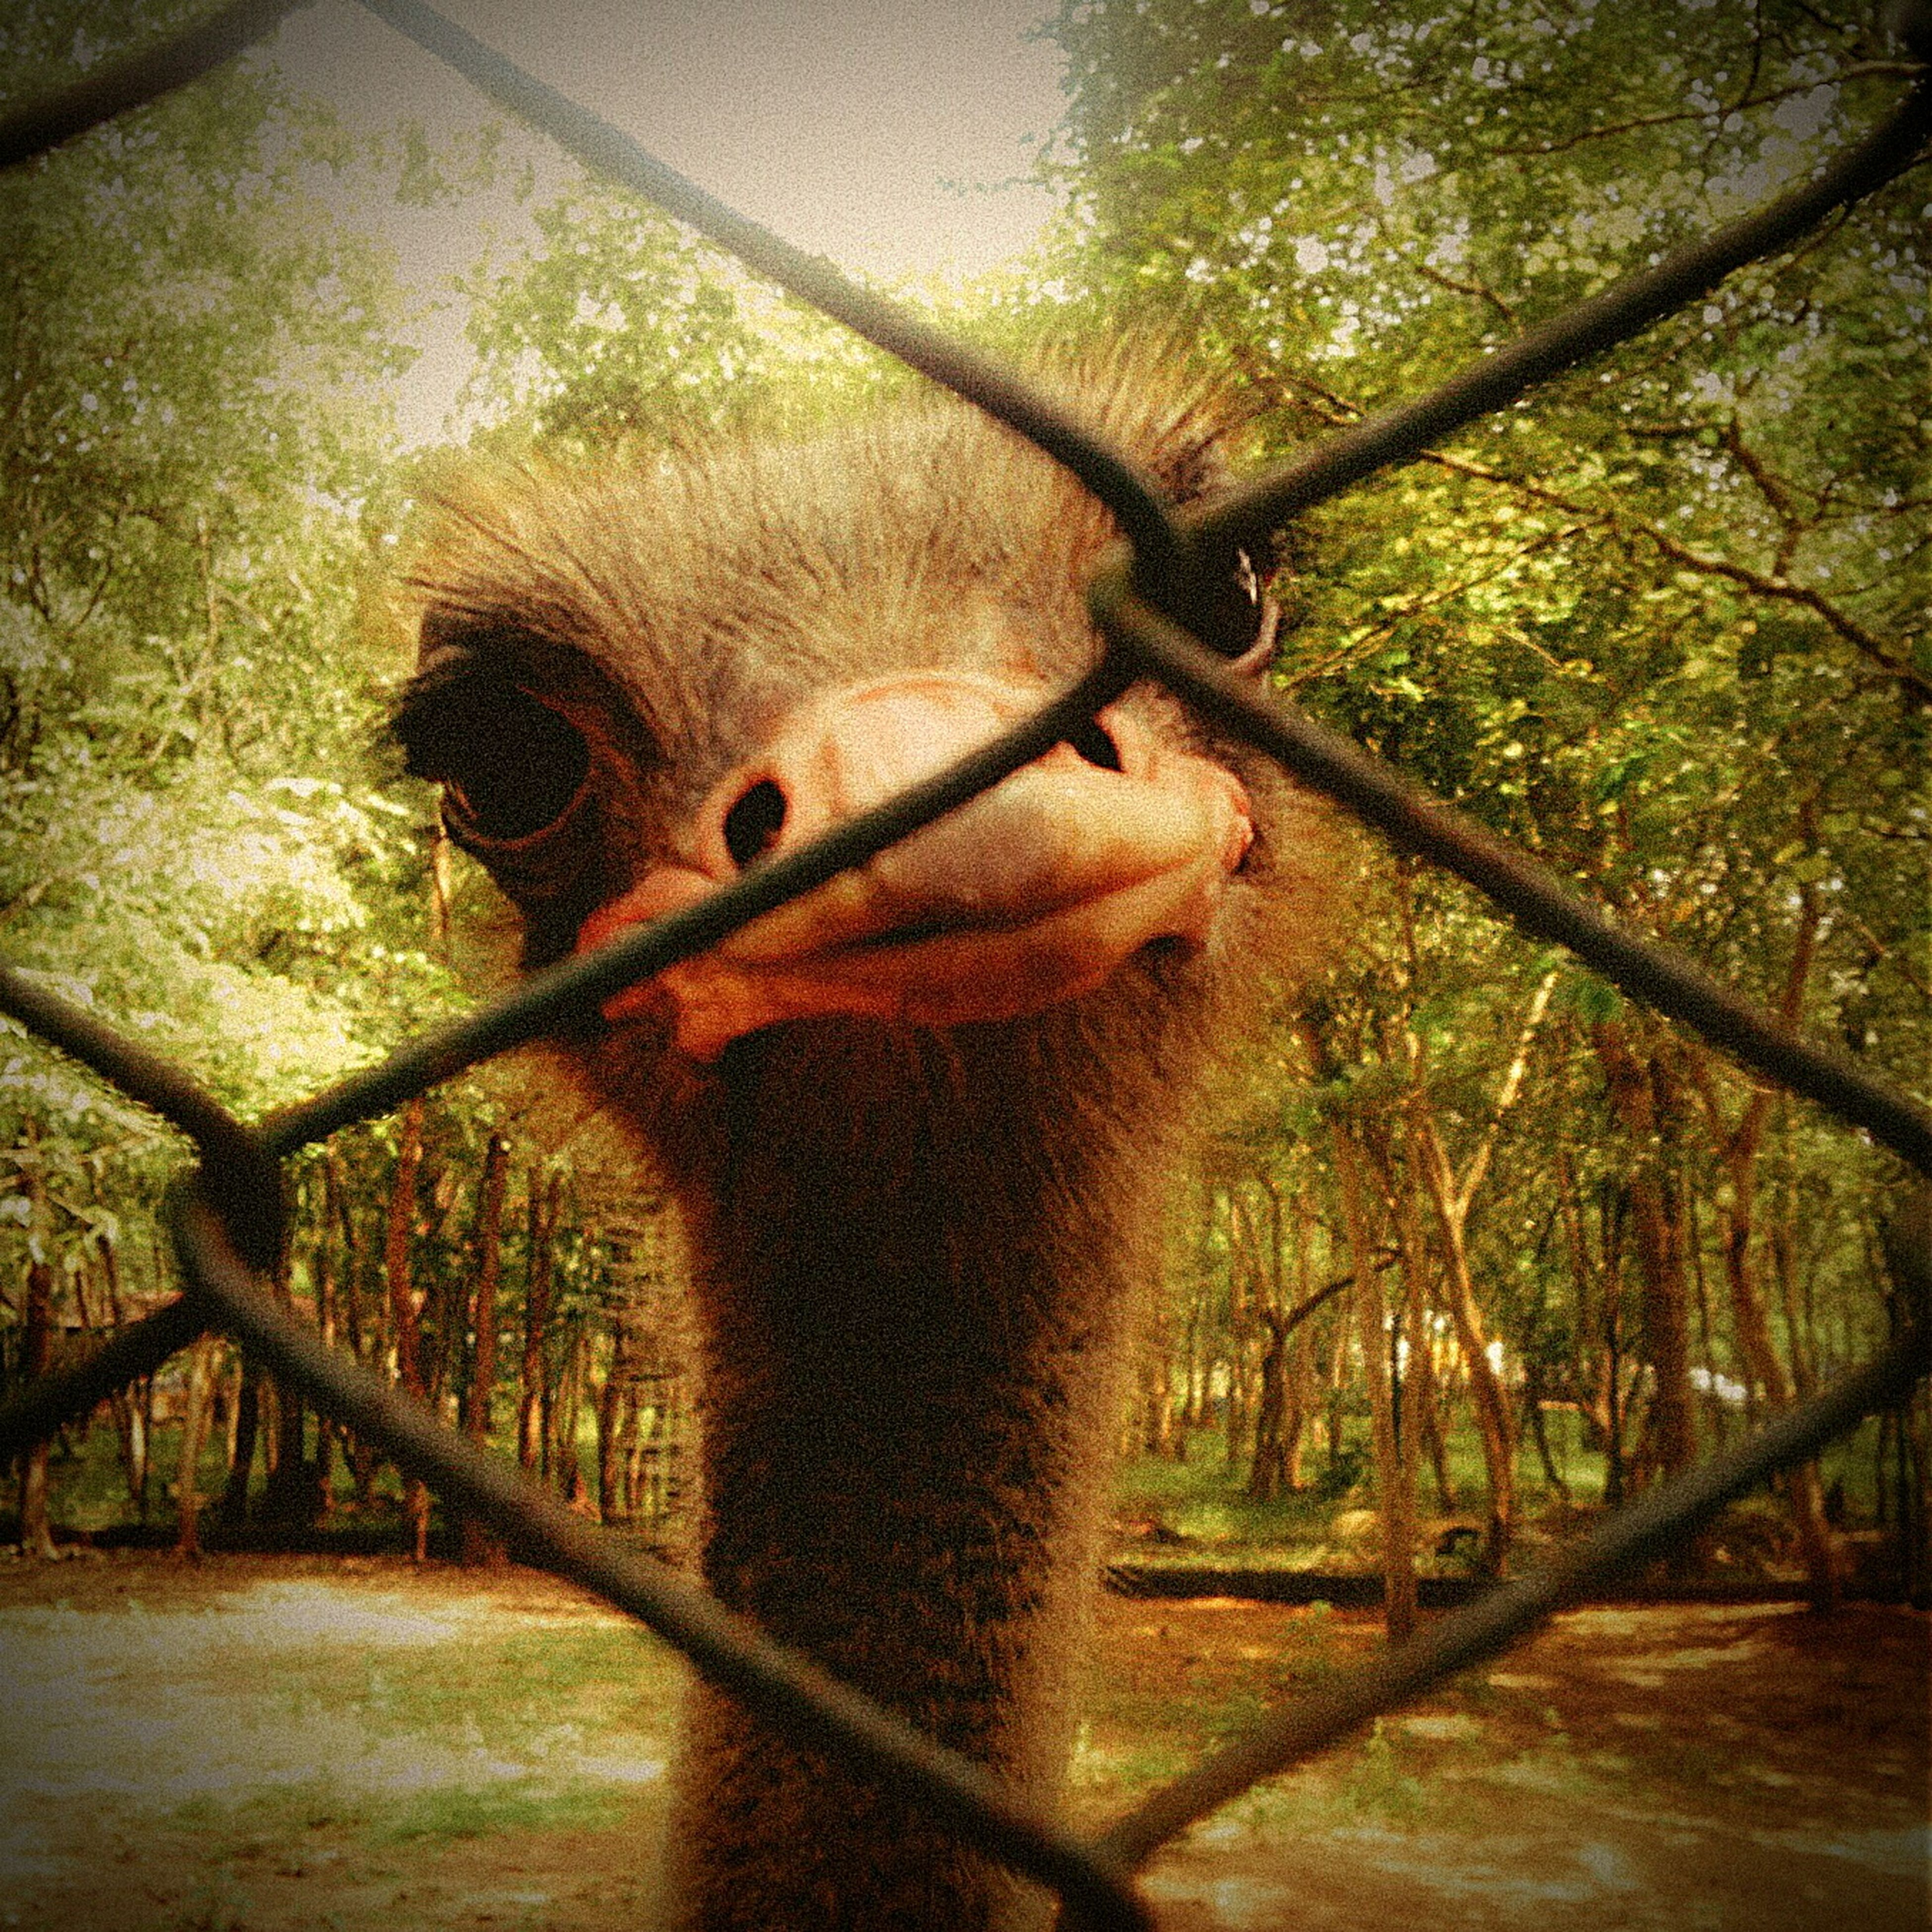 animal themes, one animal, bird, animals in the wild, wildlife, tree, branch, close-up, nature, beak, fence, animal head, focus on foreground, no people, day, outdoors, side view, wood - material, animals in captivity, perching